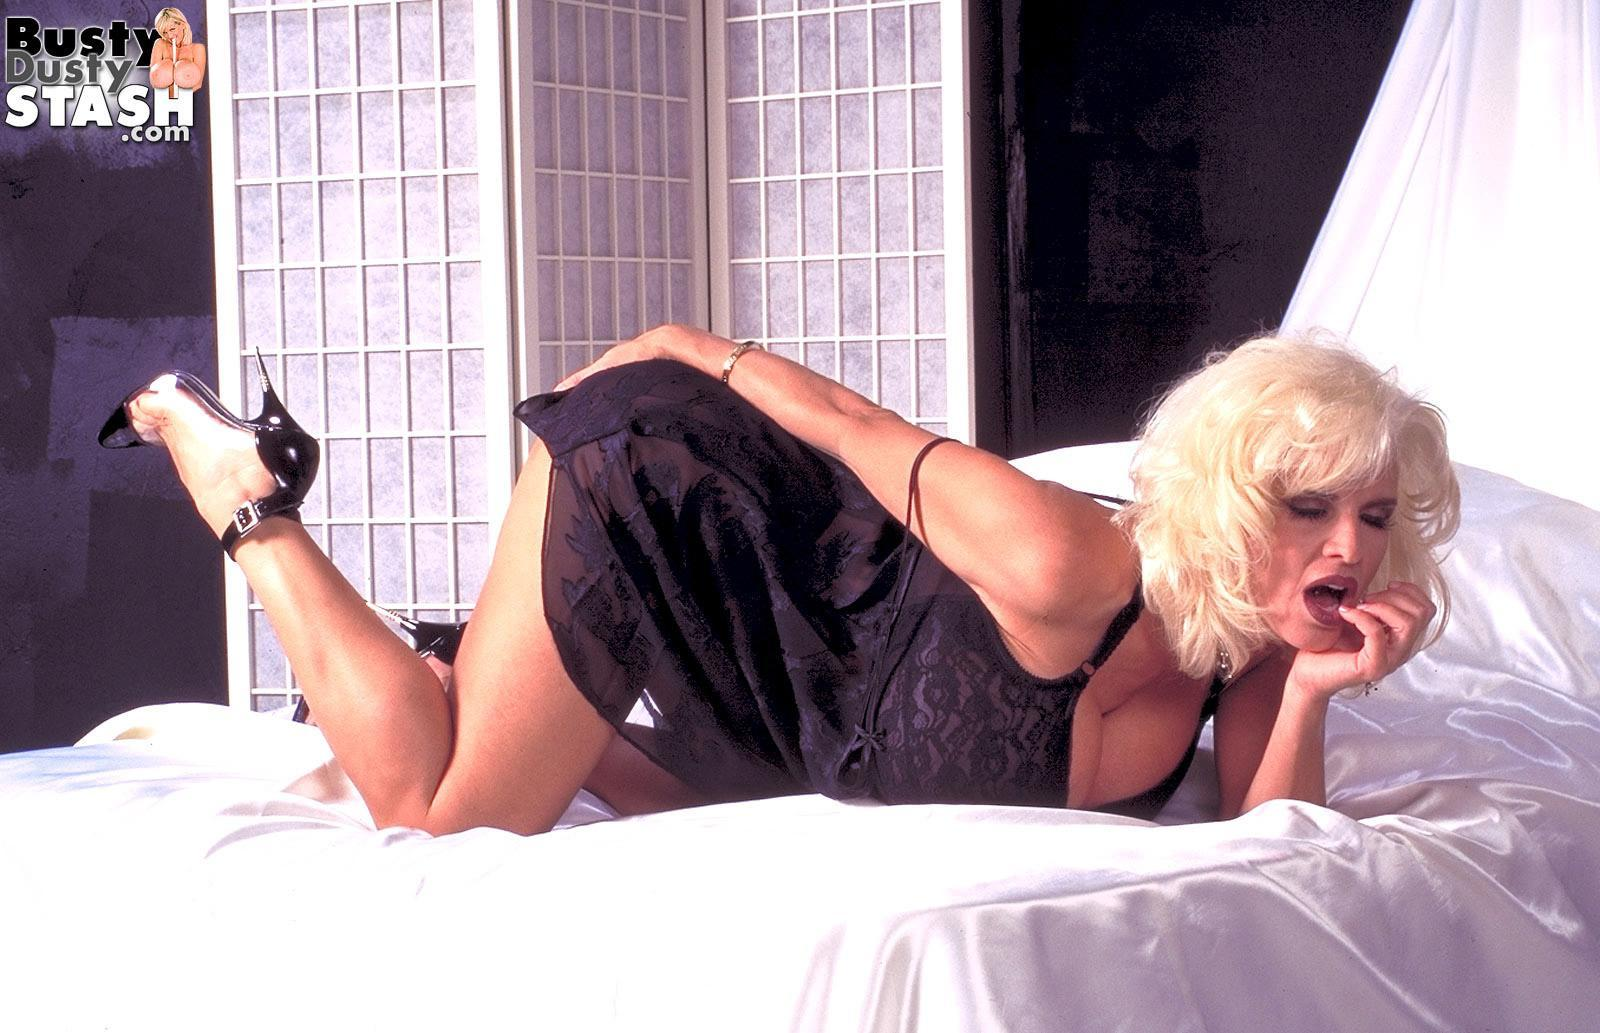 Notorious adult film starlet Chesty Dusty frees her immense breasts in semi-transparent panties and stilettos